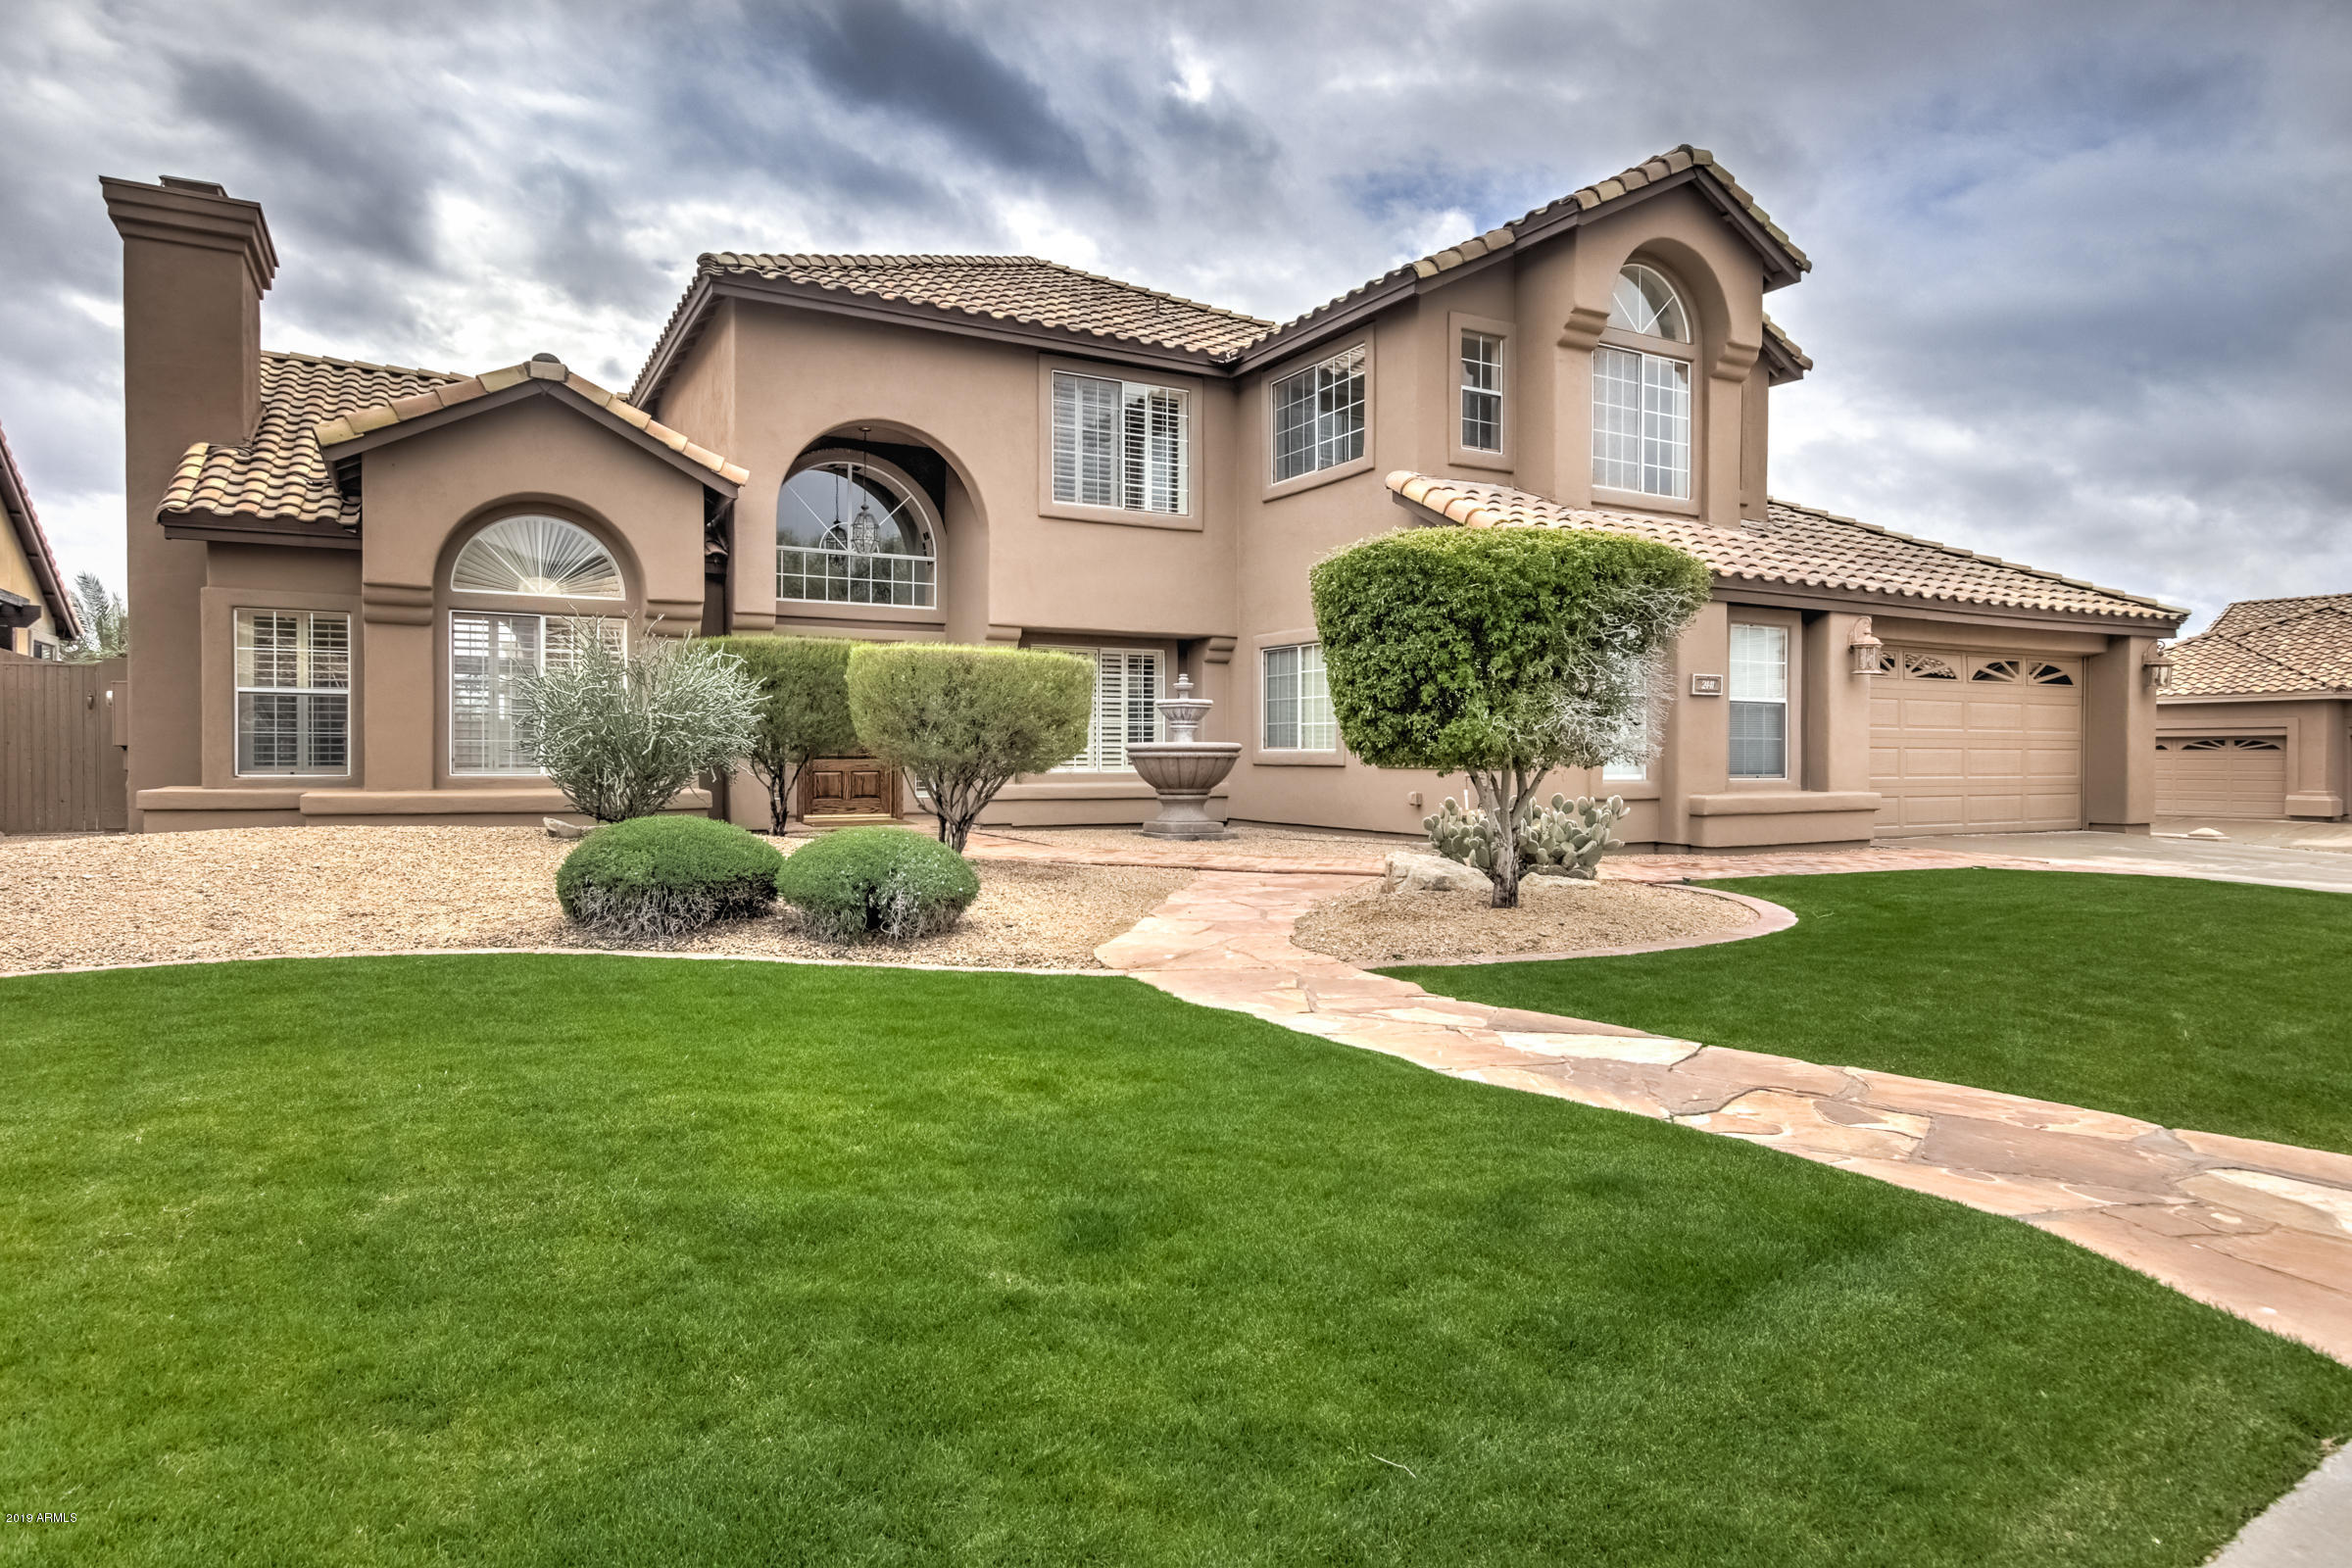 Photo of 2441 E LAVENDER Lane, Phoenix, AZ 85048